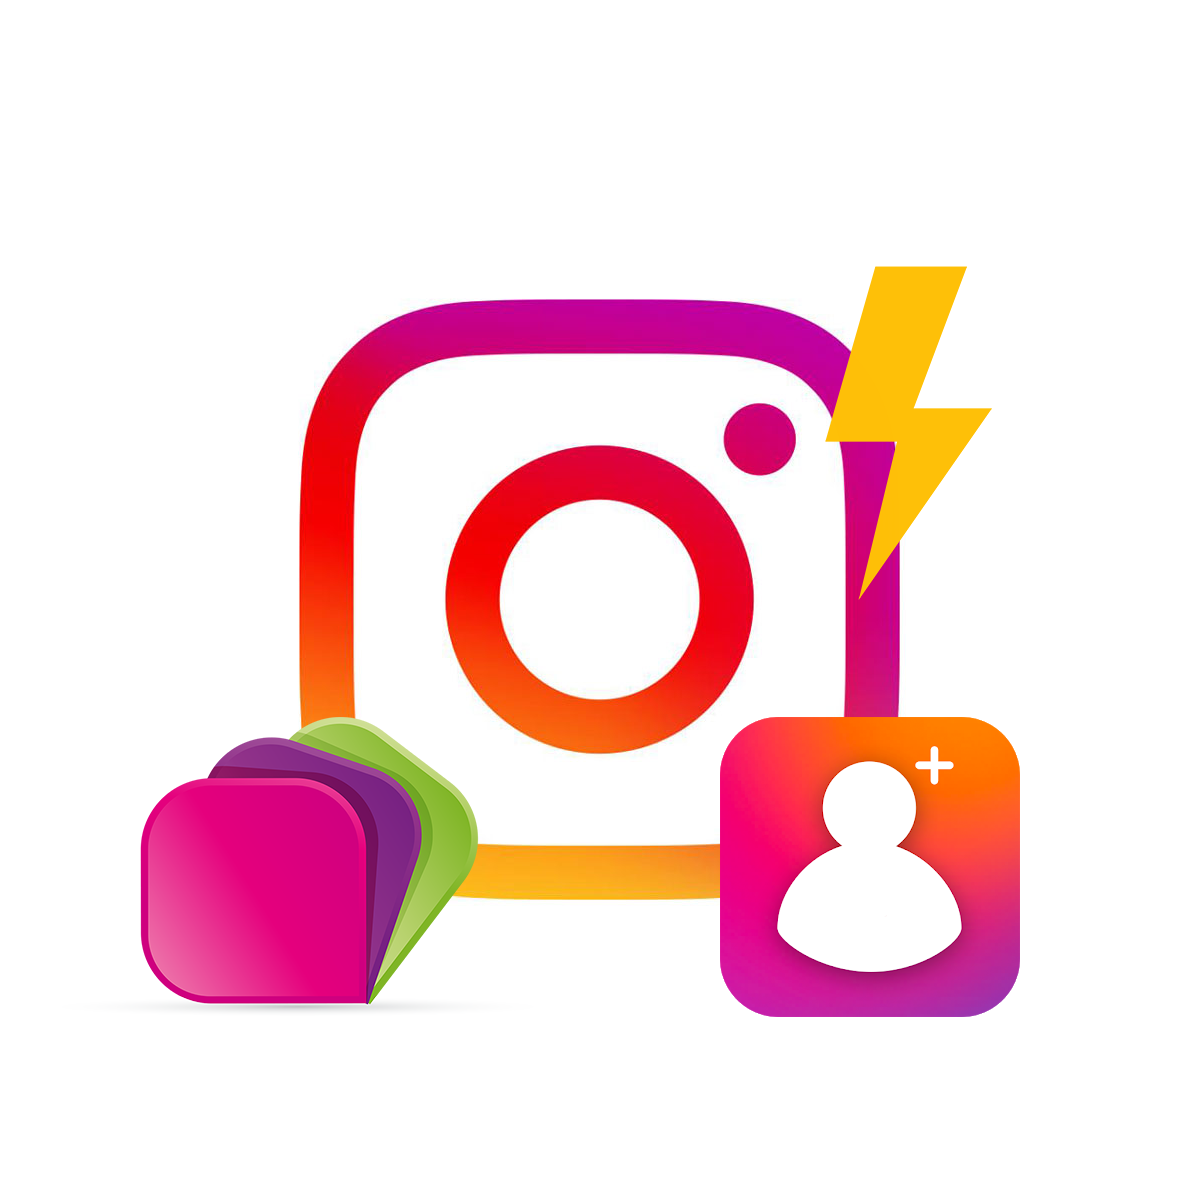 Do you know the basic ways to make money from Instagram?